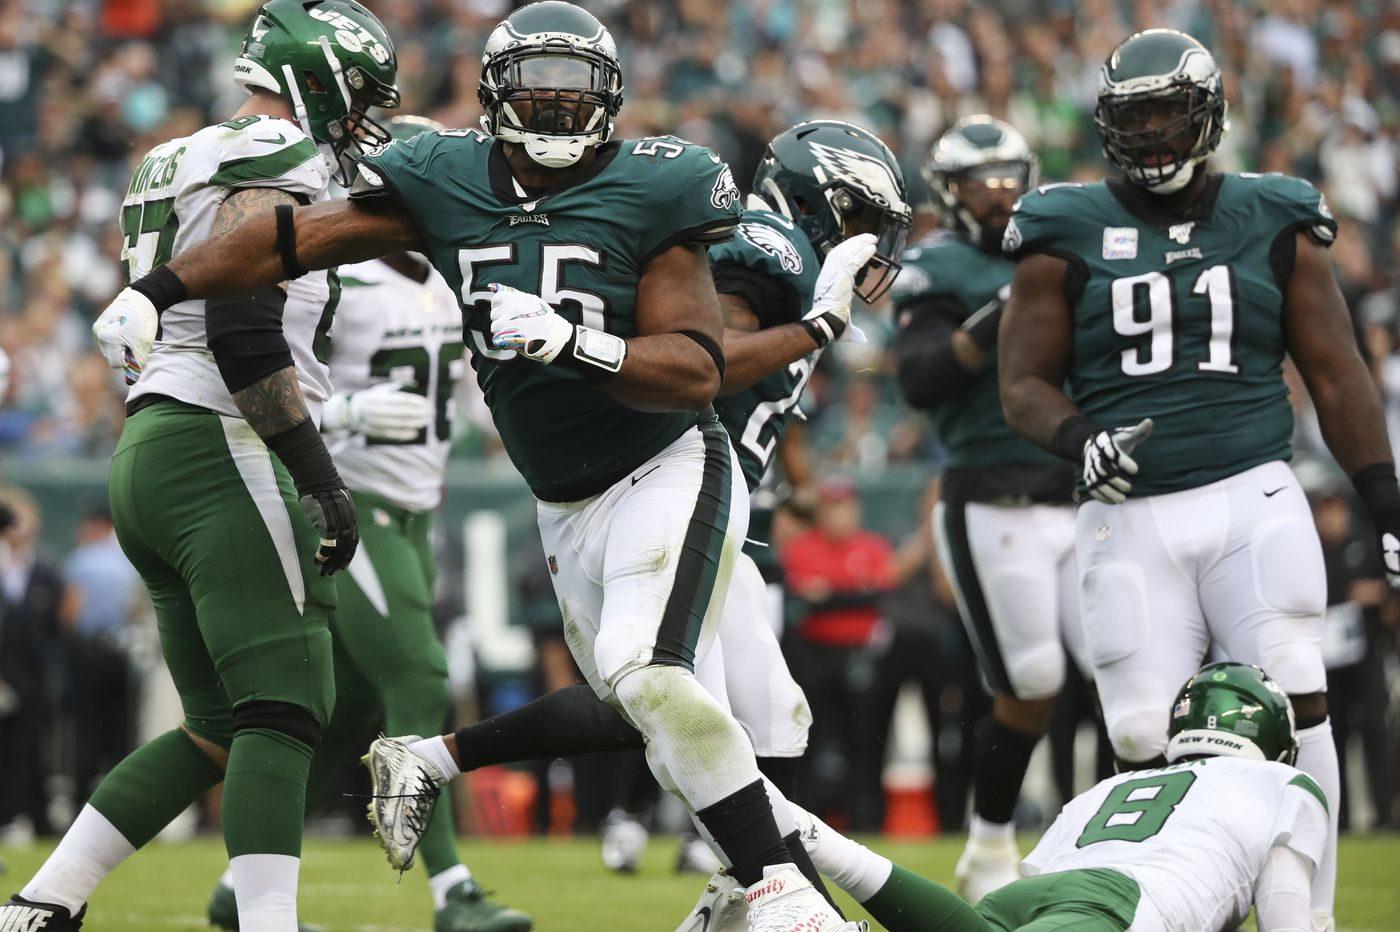 Eagles' Brandon Graham collects three of 10 sacks vs. Jets as defense dominates, 31-6 | Four quick takes